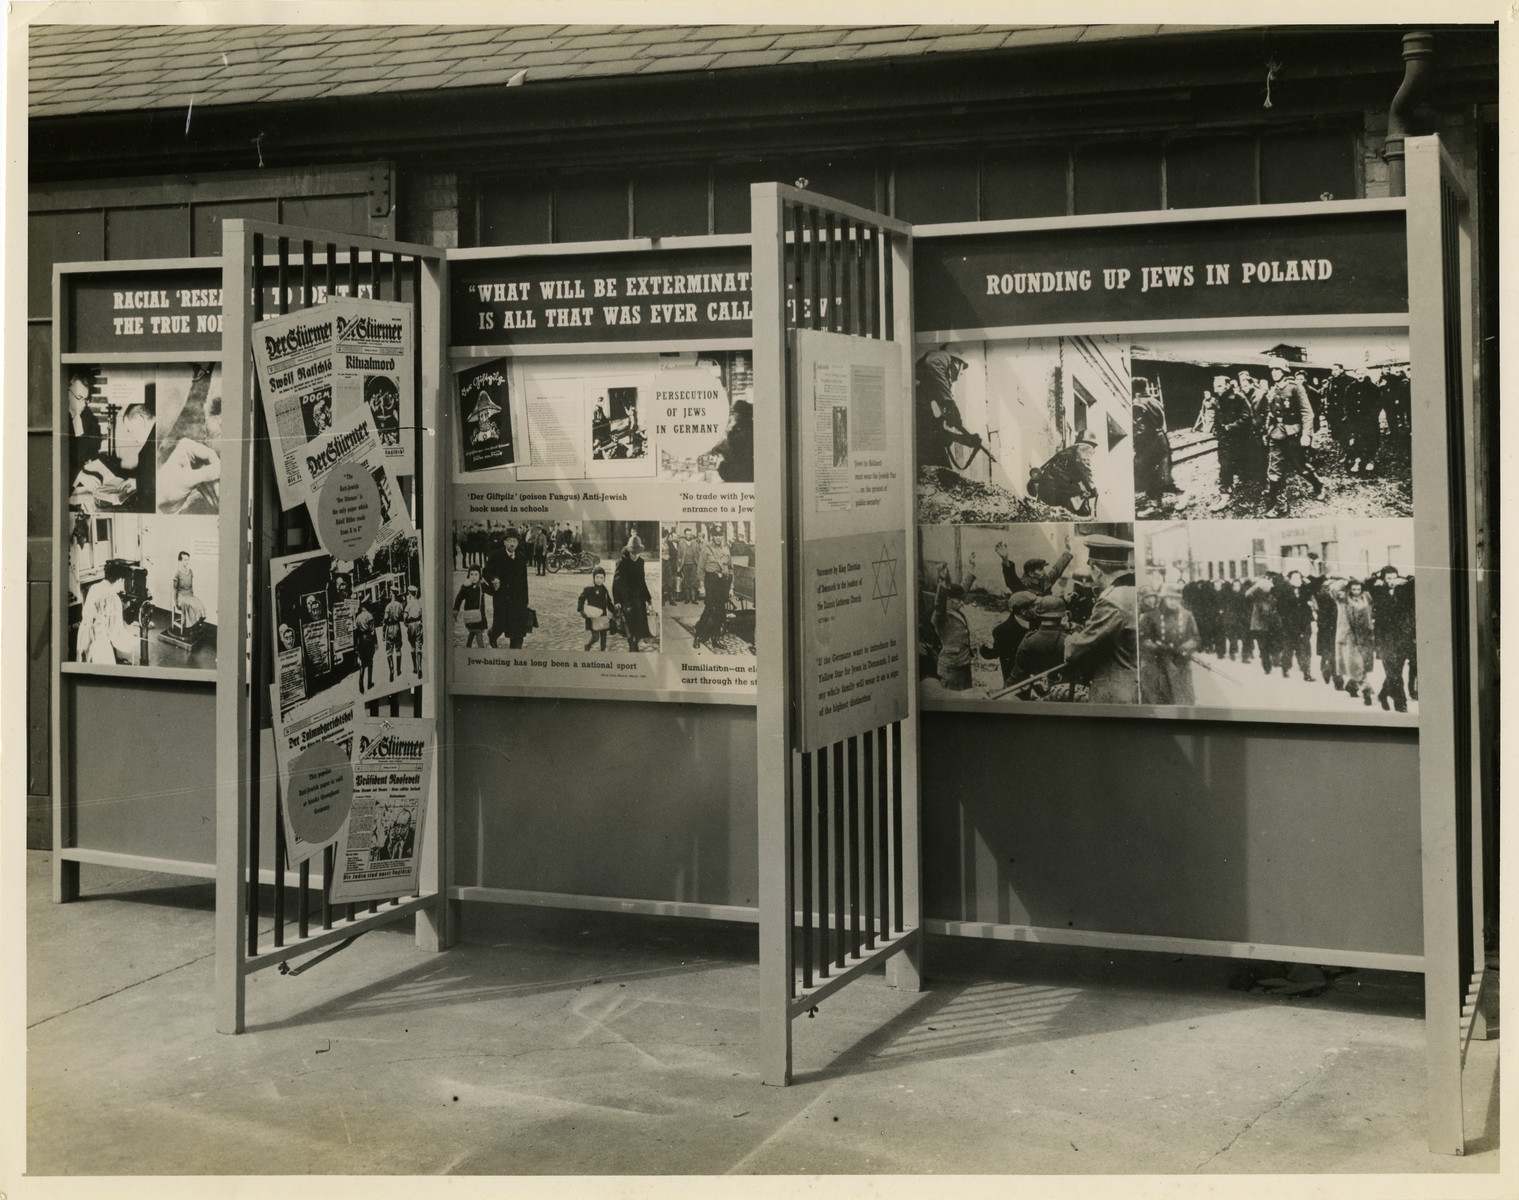 """Panel from a 1944 exhibition in London, England, entitled """"Germany- the Evidence"""" showing German antisemitism and persecution against the Jews.   The panels are titled """"Racial 'Research' To Identify the True Nordic [Race]"""", """"What Will Be Exterminated Is All That Was Called [A] Jew"""", and """"Rounding Up Jews in Poland"""" and describe the antisemitic measures that the Nazi Regime implemented during World War II.   The back of the photo reads """"British Official Photograph; Distrbuted by the Ministry of Information. D. ; The Evil We Fight.; Ministry of Information Exhibition priduced by Display &Exhibitions Division for show all over Great Britain.; Display panel"""""""